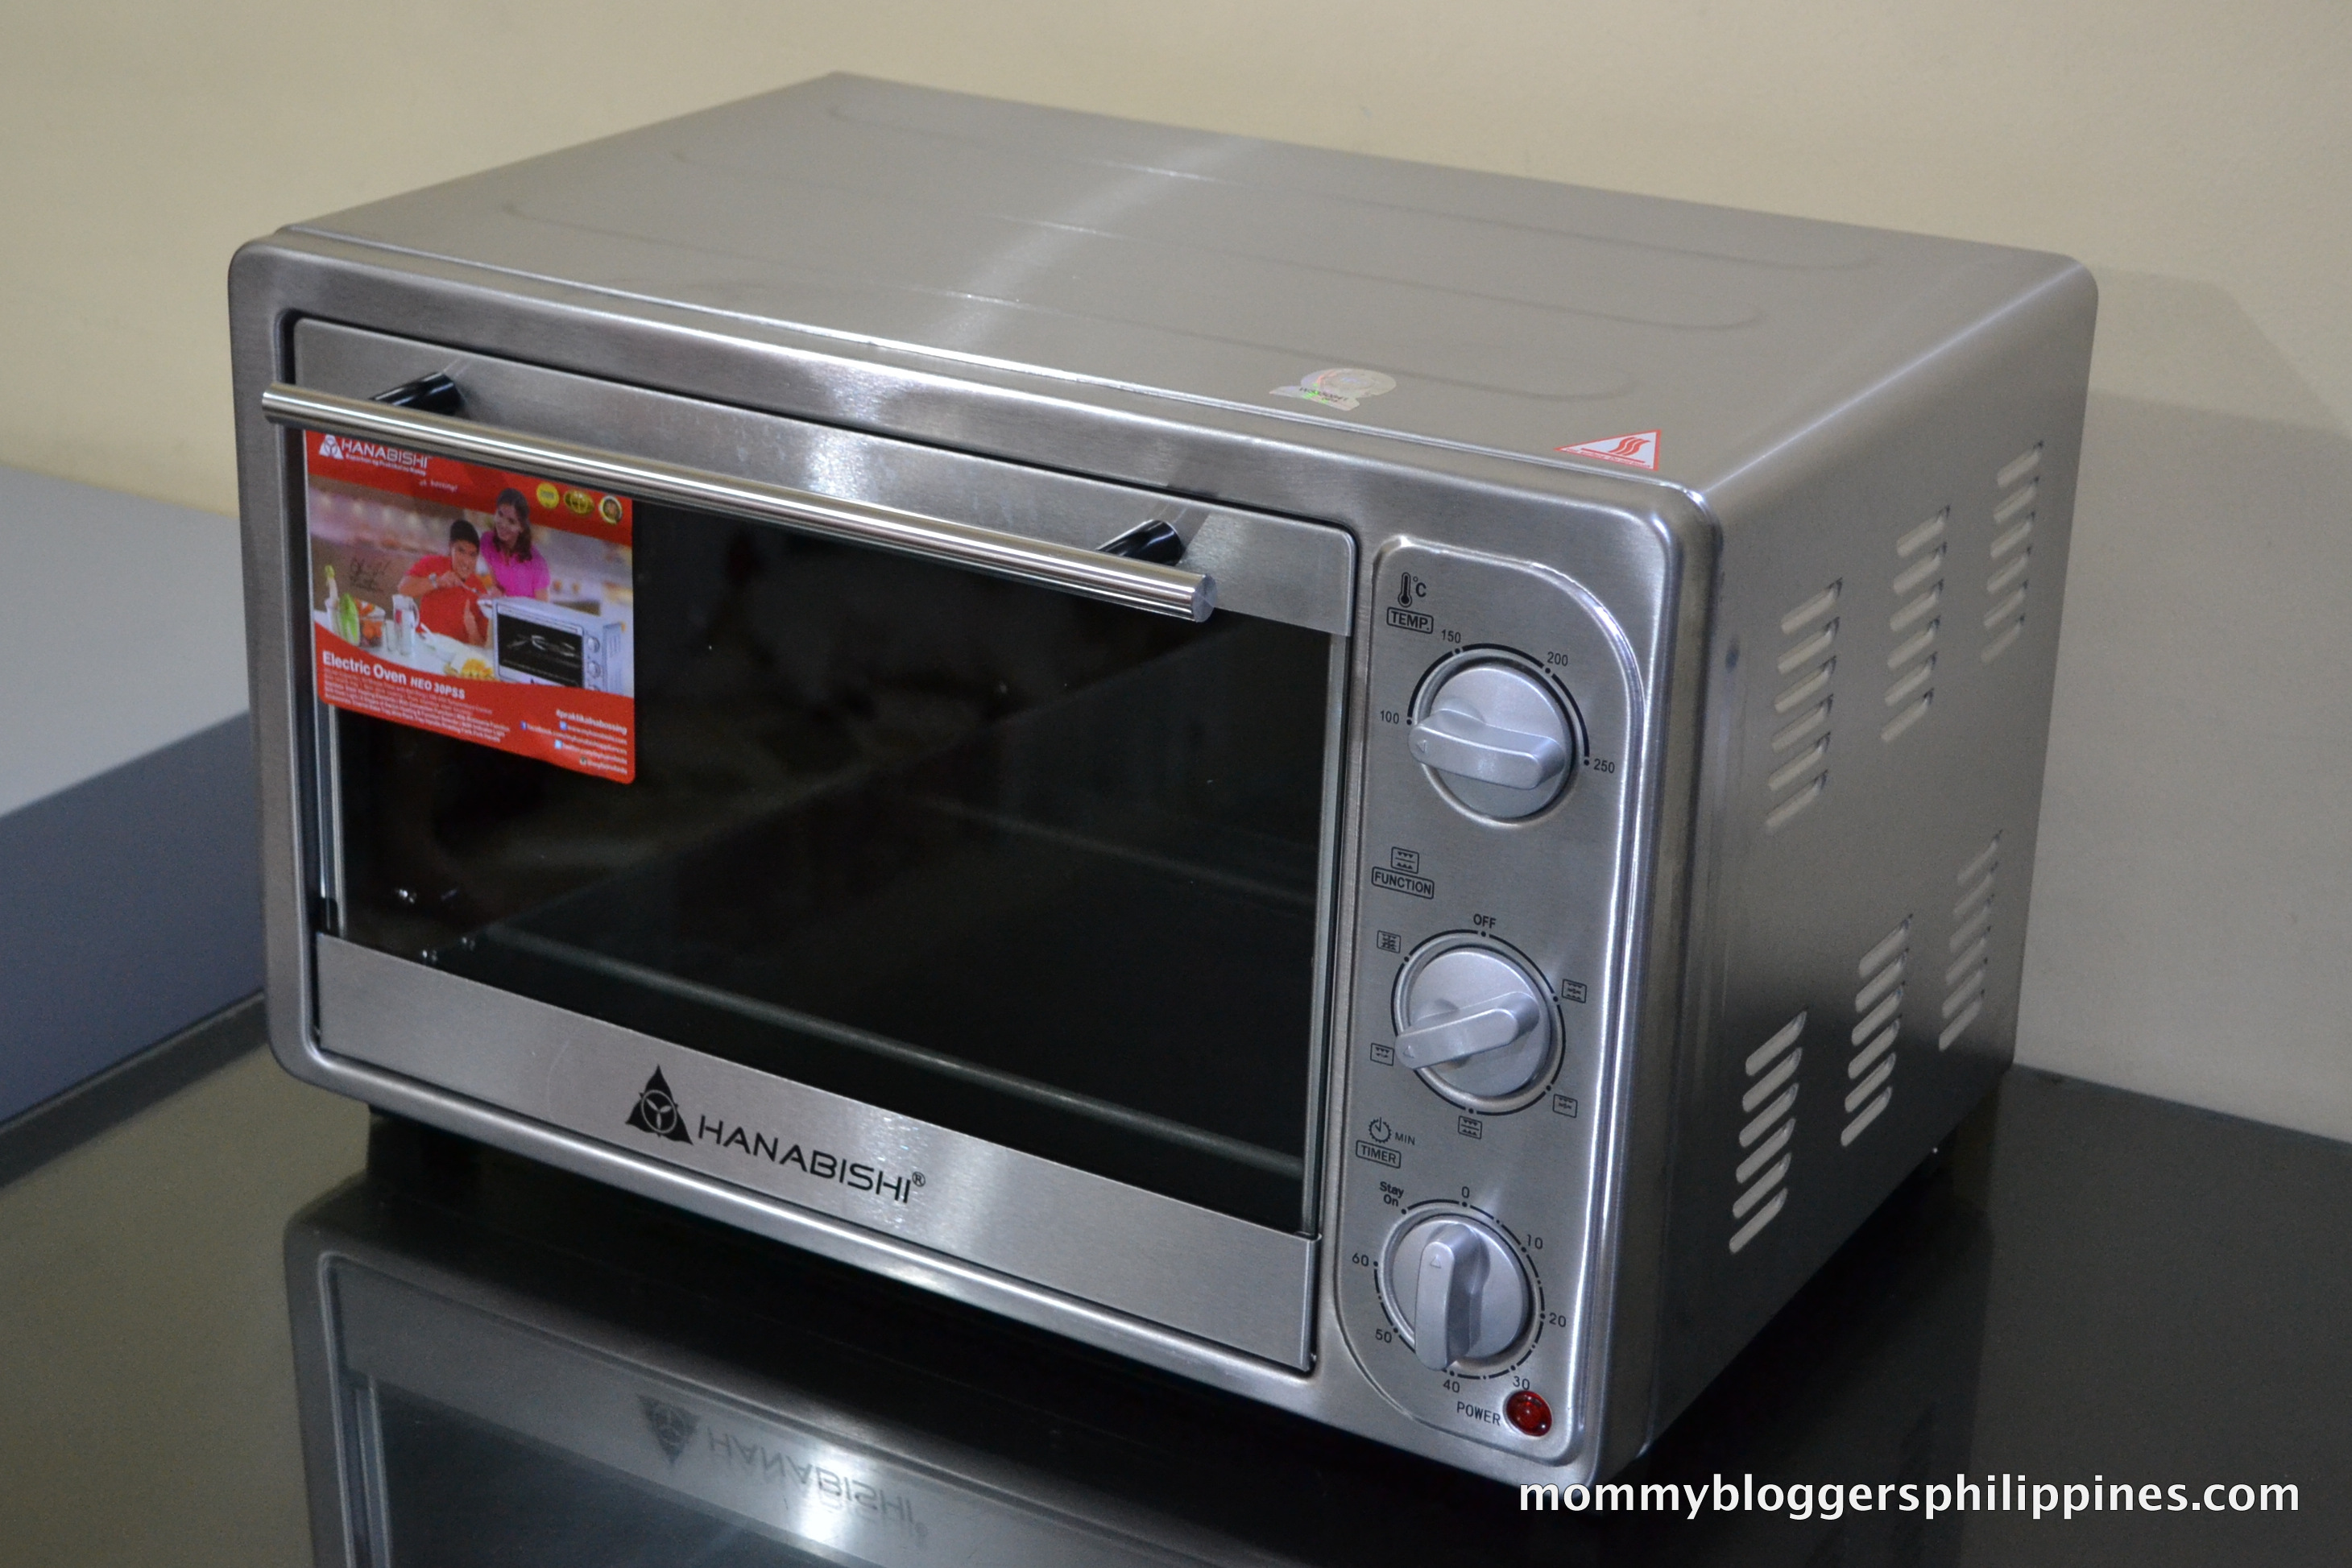 geek oven ovens americana retro review toaster ero for sale